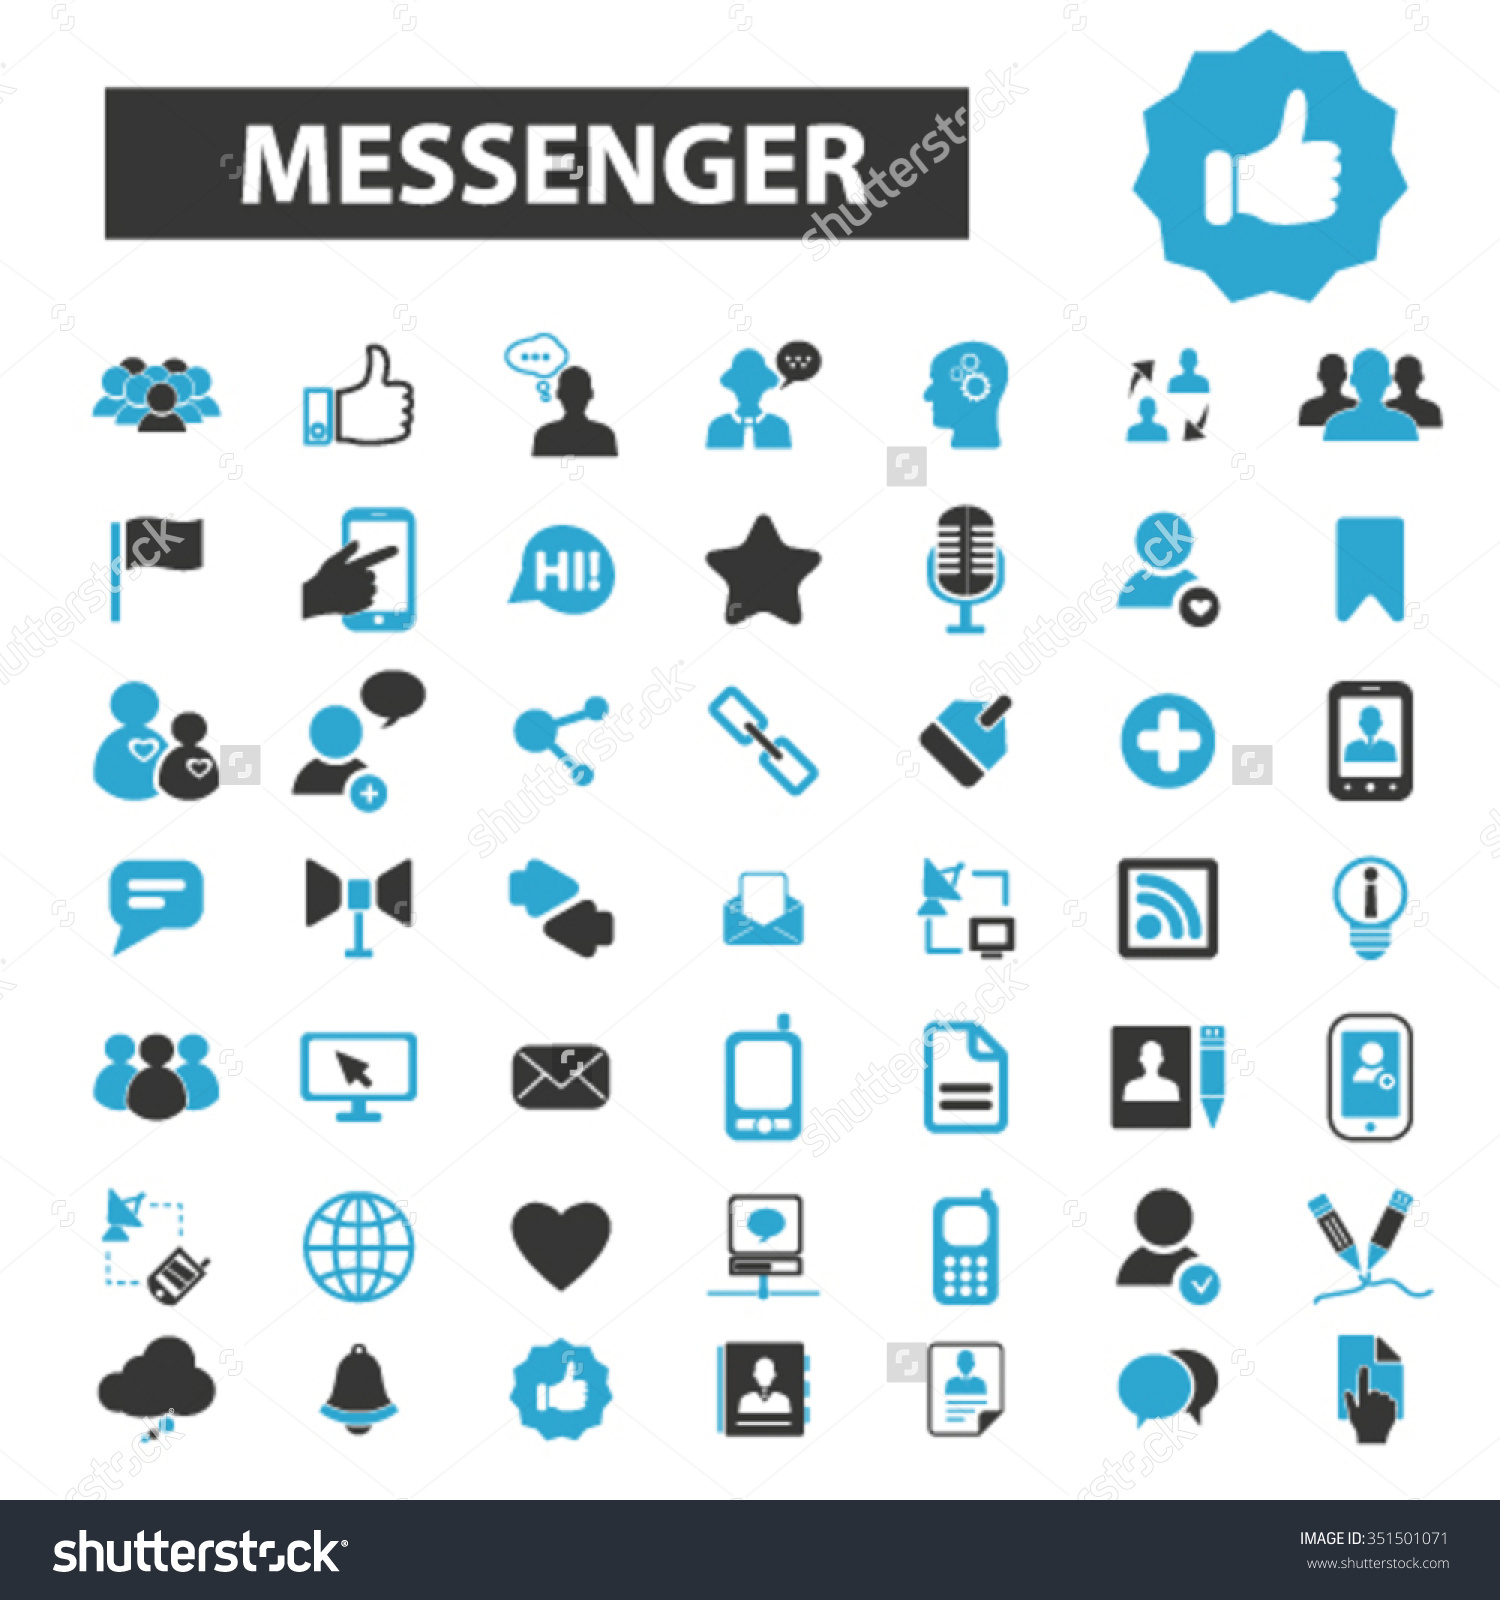 Social media cell phone photo clipart transparent library Messenger,Connect, Communication, Telephone, Cellphone, Gadget ... transparent library